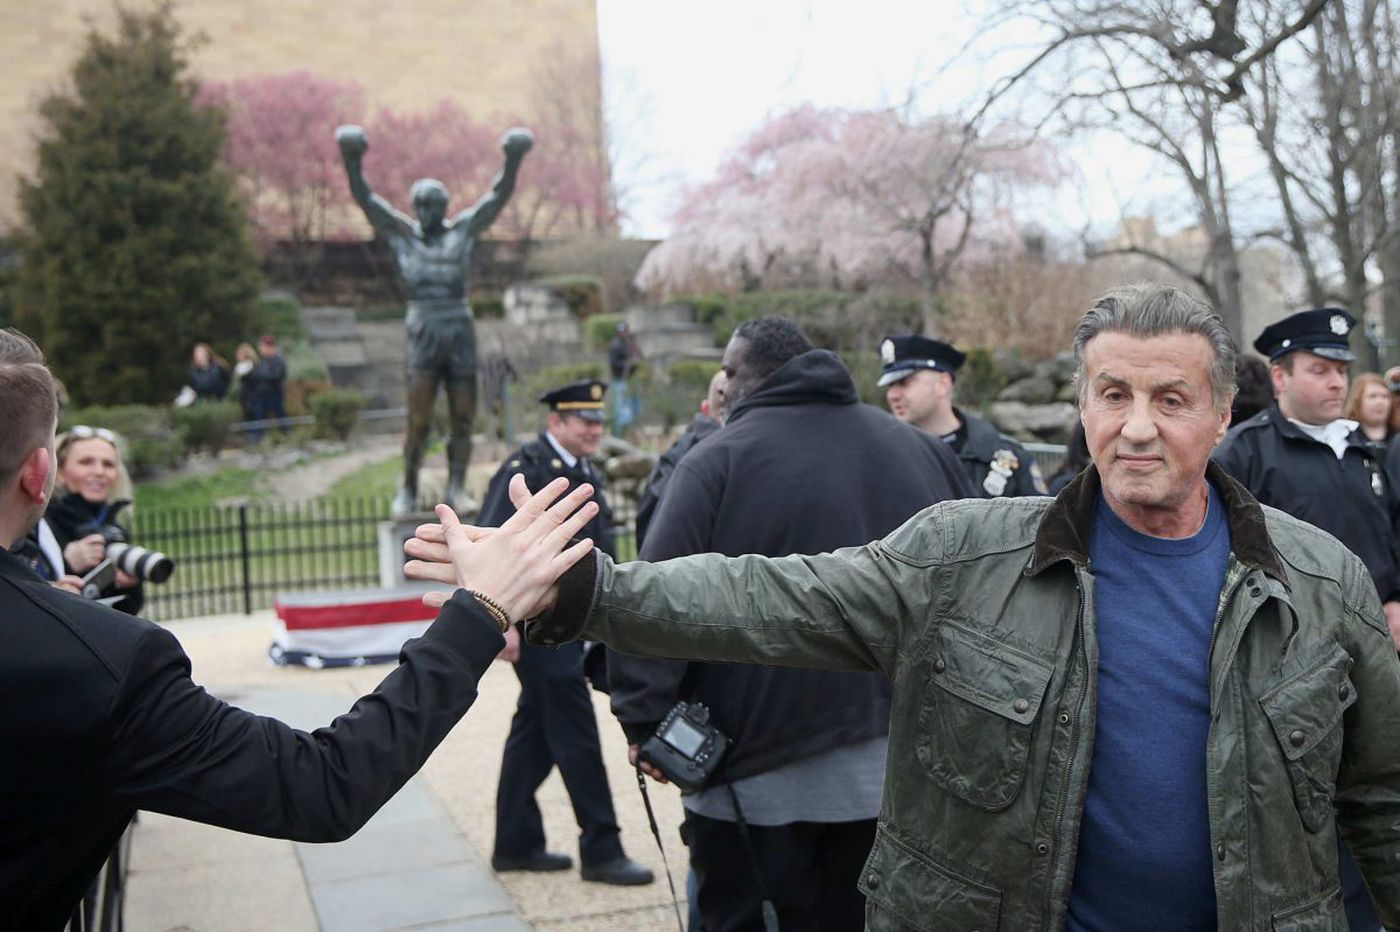 Sylvester Stallone makes surprise appearance at Rocky statue